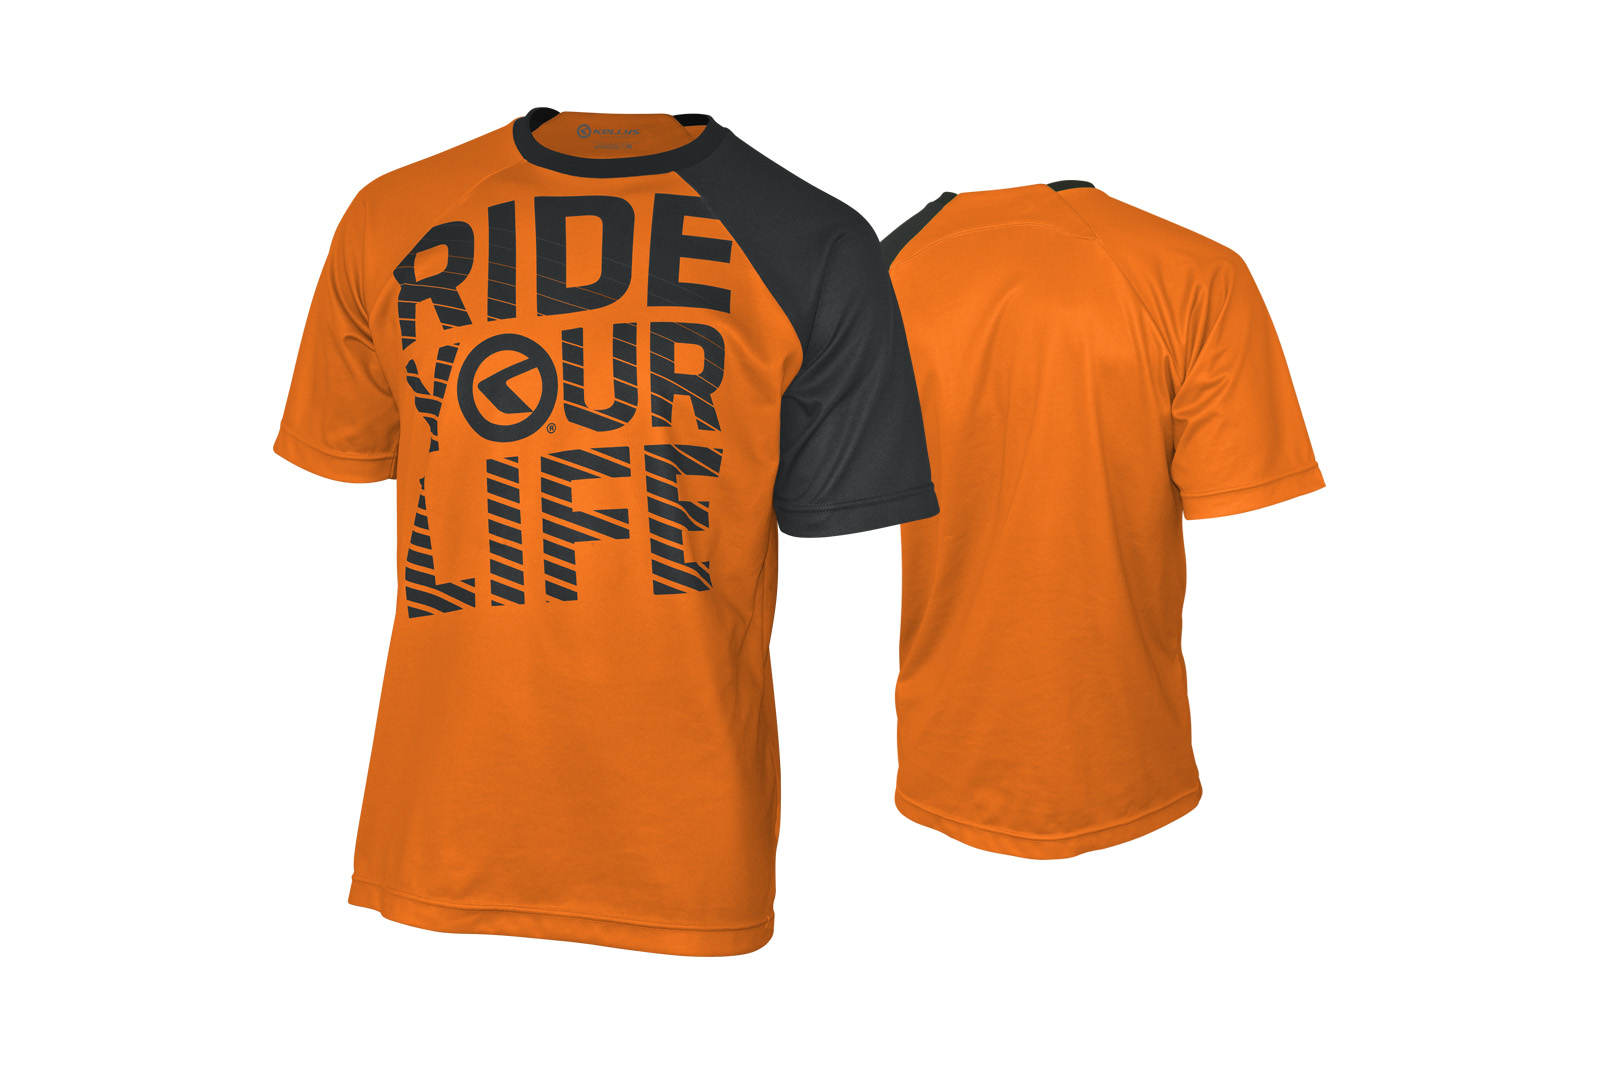 Kurzarmtrikot KELLYS RIDE YOUR LIFE orange - L - Mega Handelsgesellschaft